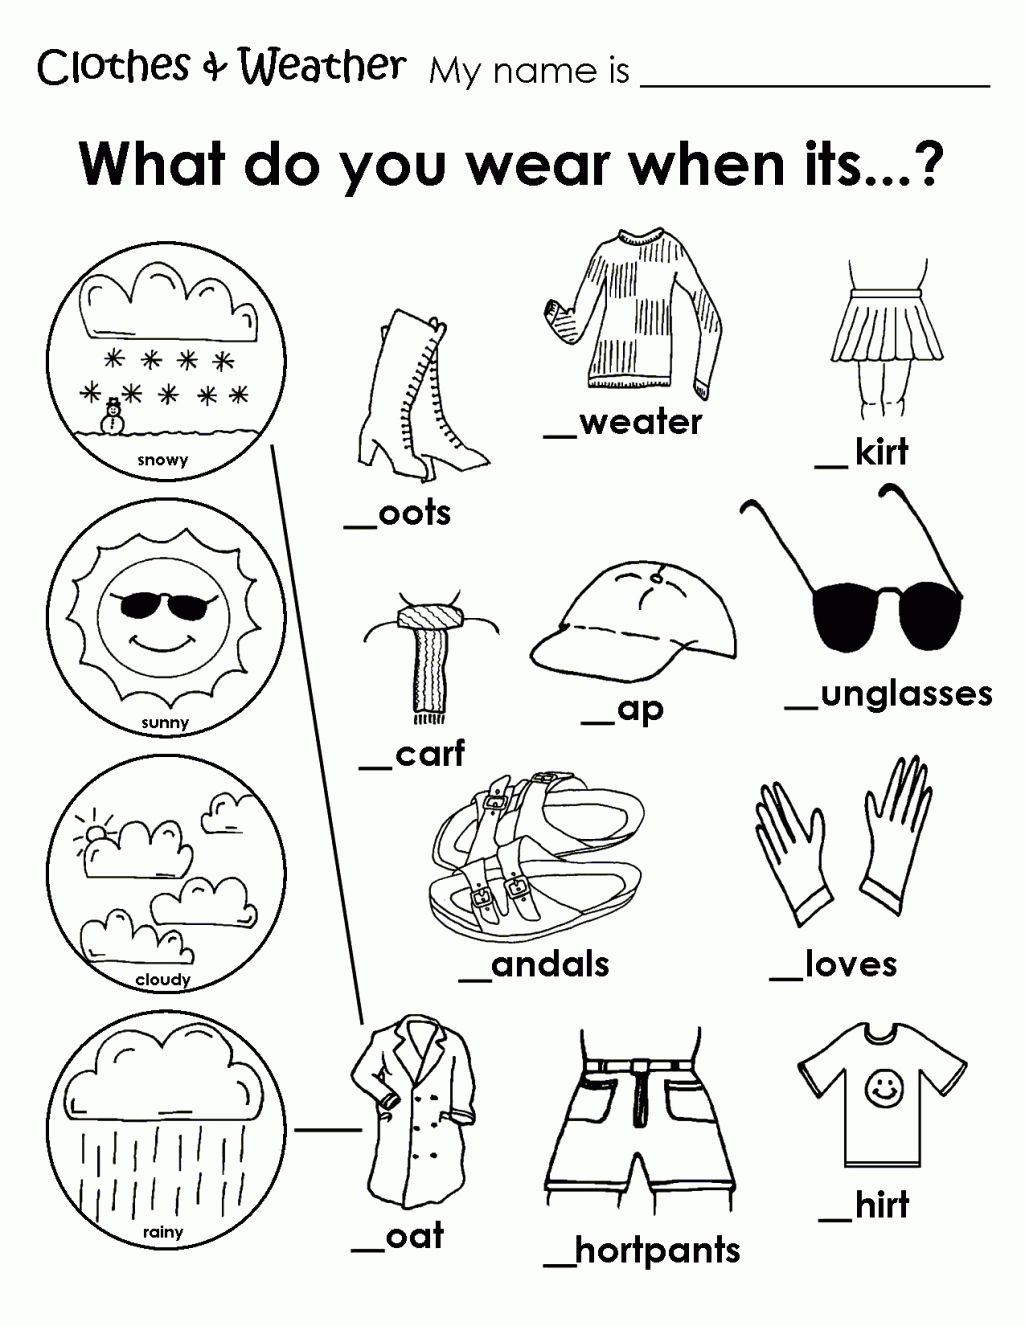 Printable Weather Clothes Worksheet English Activities For Kids Weather Worksheets English Worksheets For Kids